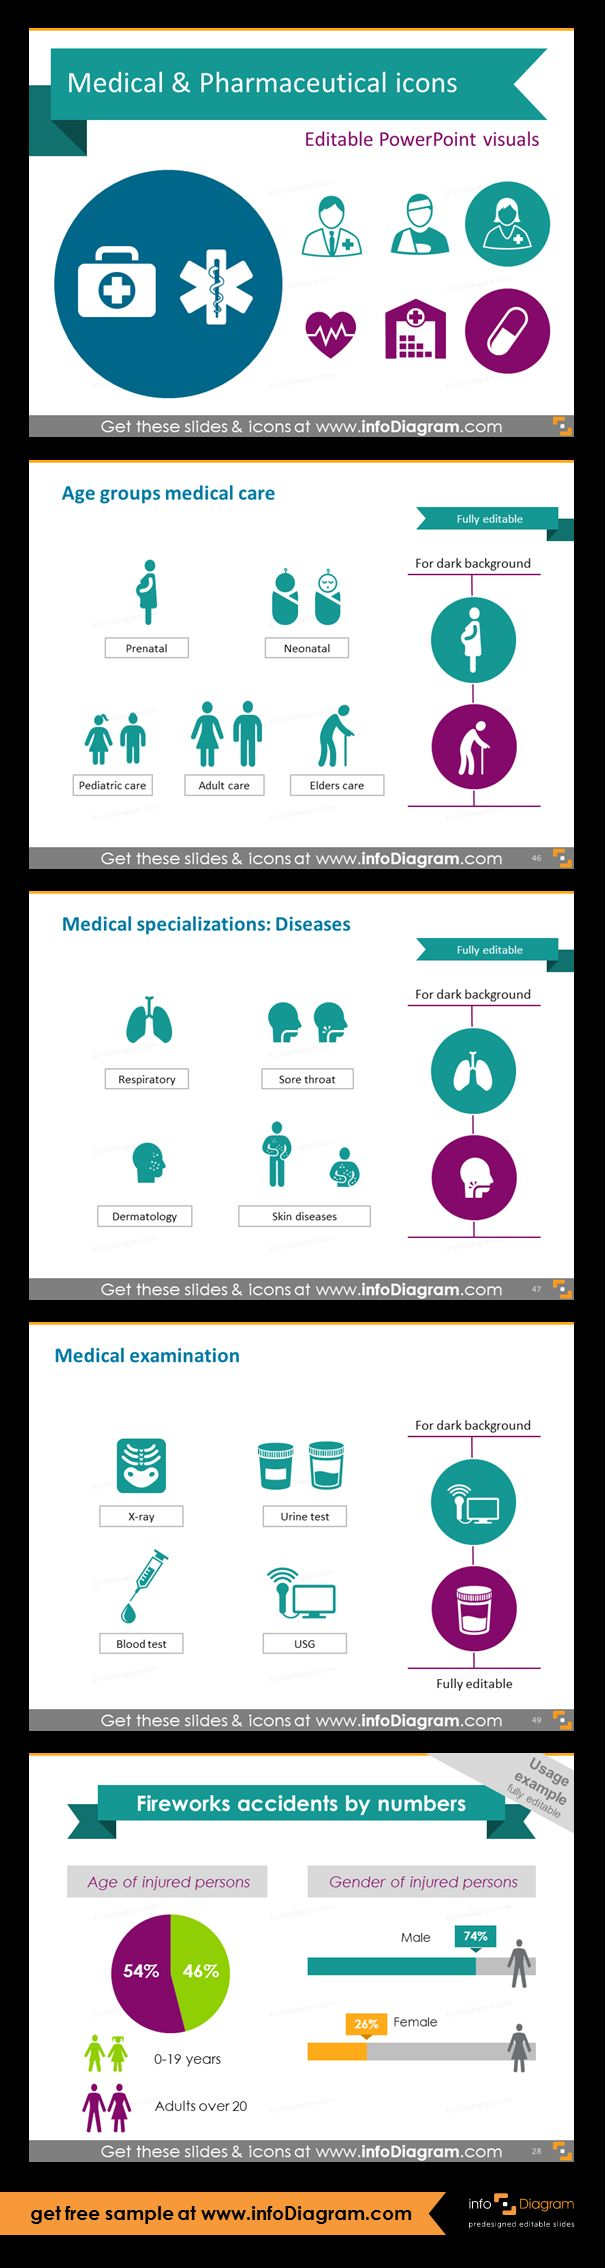 Health care icons. Age groups medical care: Prenatal, Neonatal, Kids, Adult, Elders. Diseases: Respiratory, Sore throat, Dermatology, Skin diseases. Medical examination: x-ray, urine test, blood test, usg. Infographics on fireworks injuries by numbers.